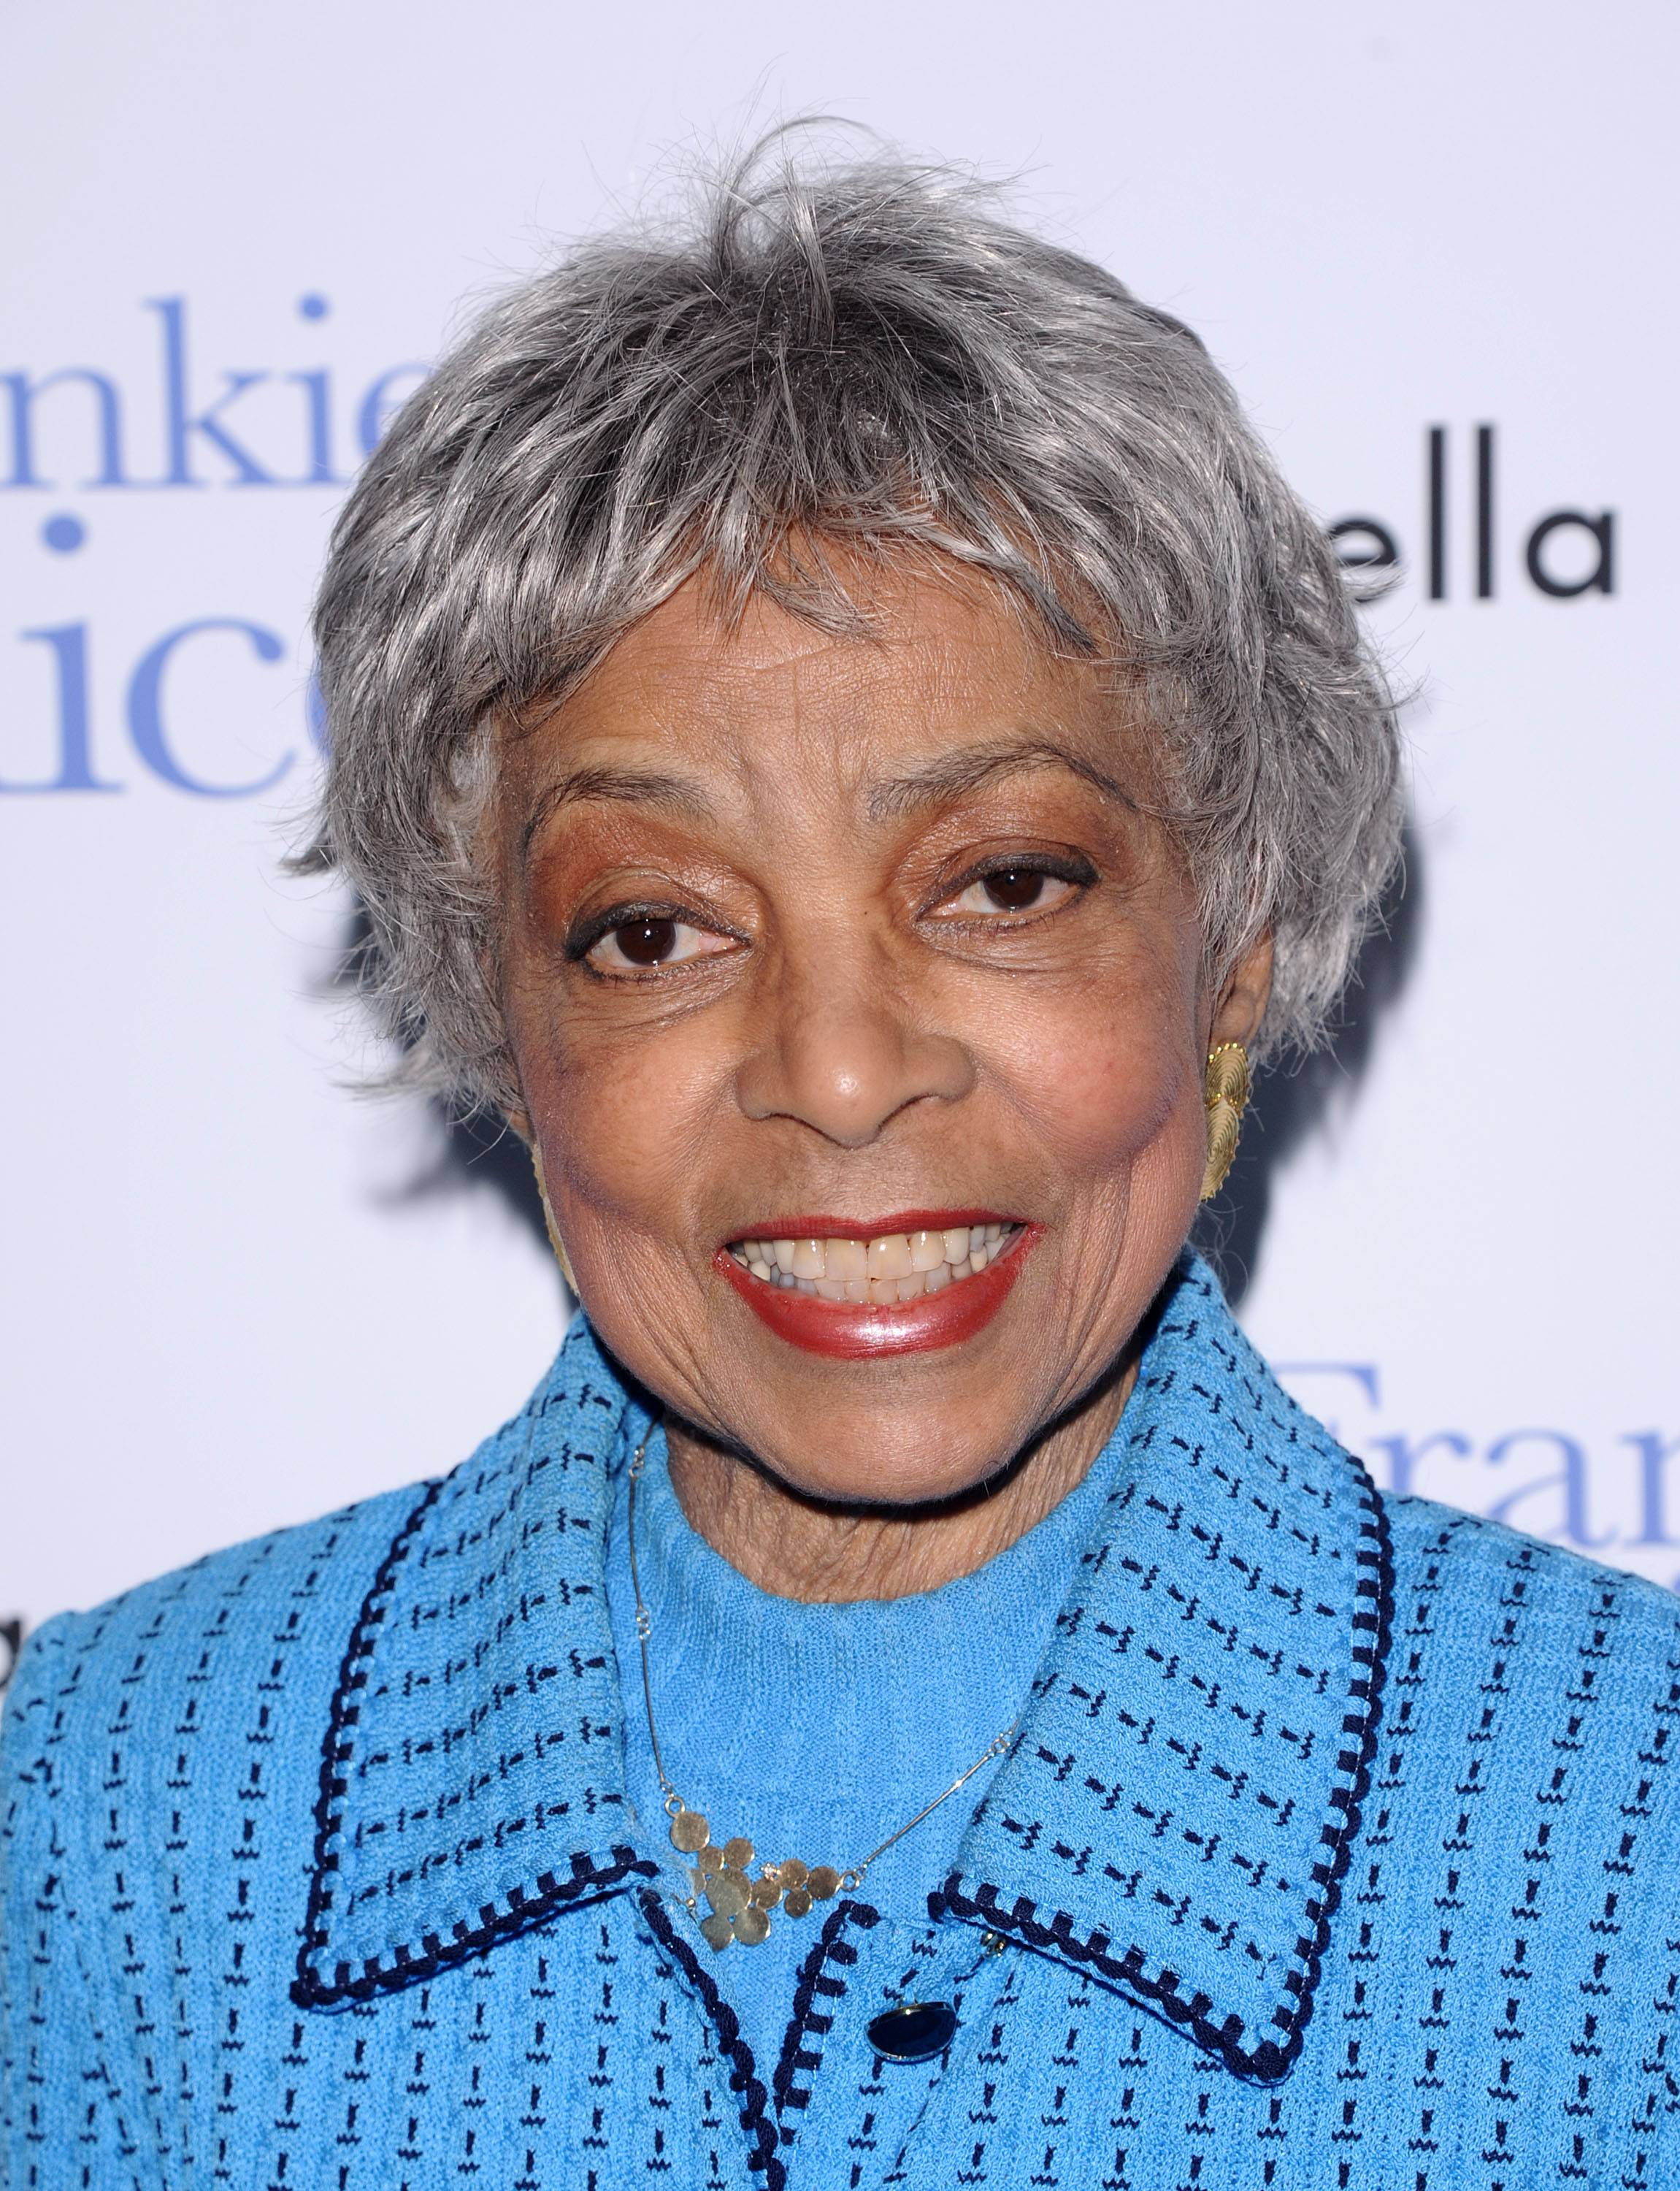 Ruby Dee, an acclaimed actor and civil rights activist whose versatile career spanned stage, radio television and film, has died at age 91, according to her daughter.